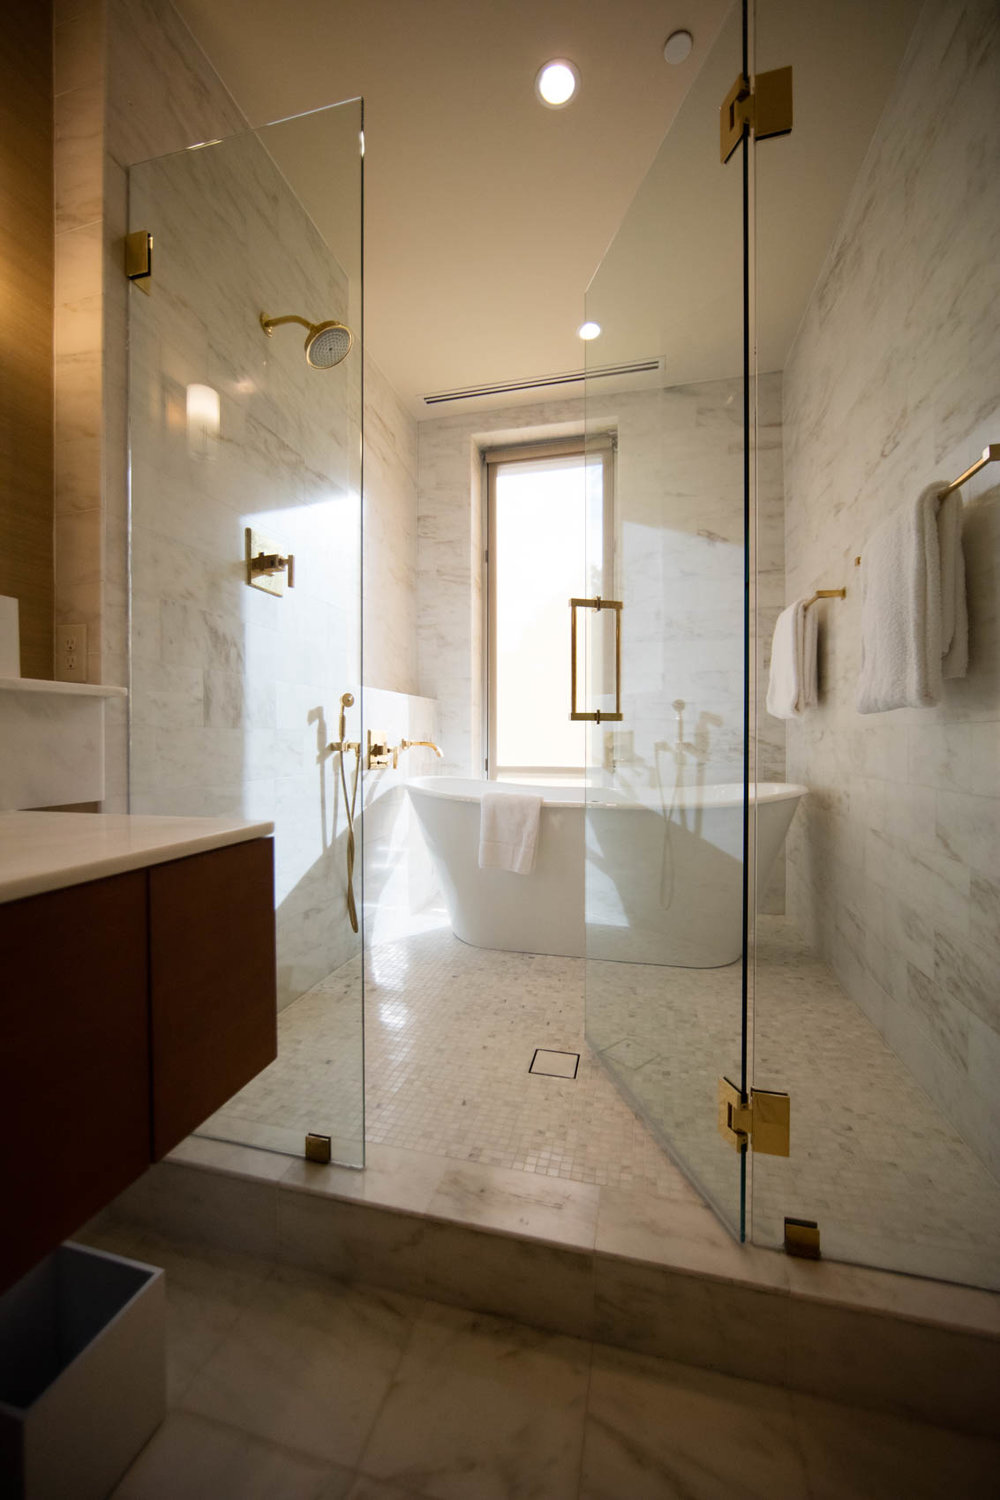 marble bathroom with glass shower doors and soaker tub